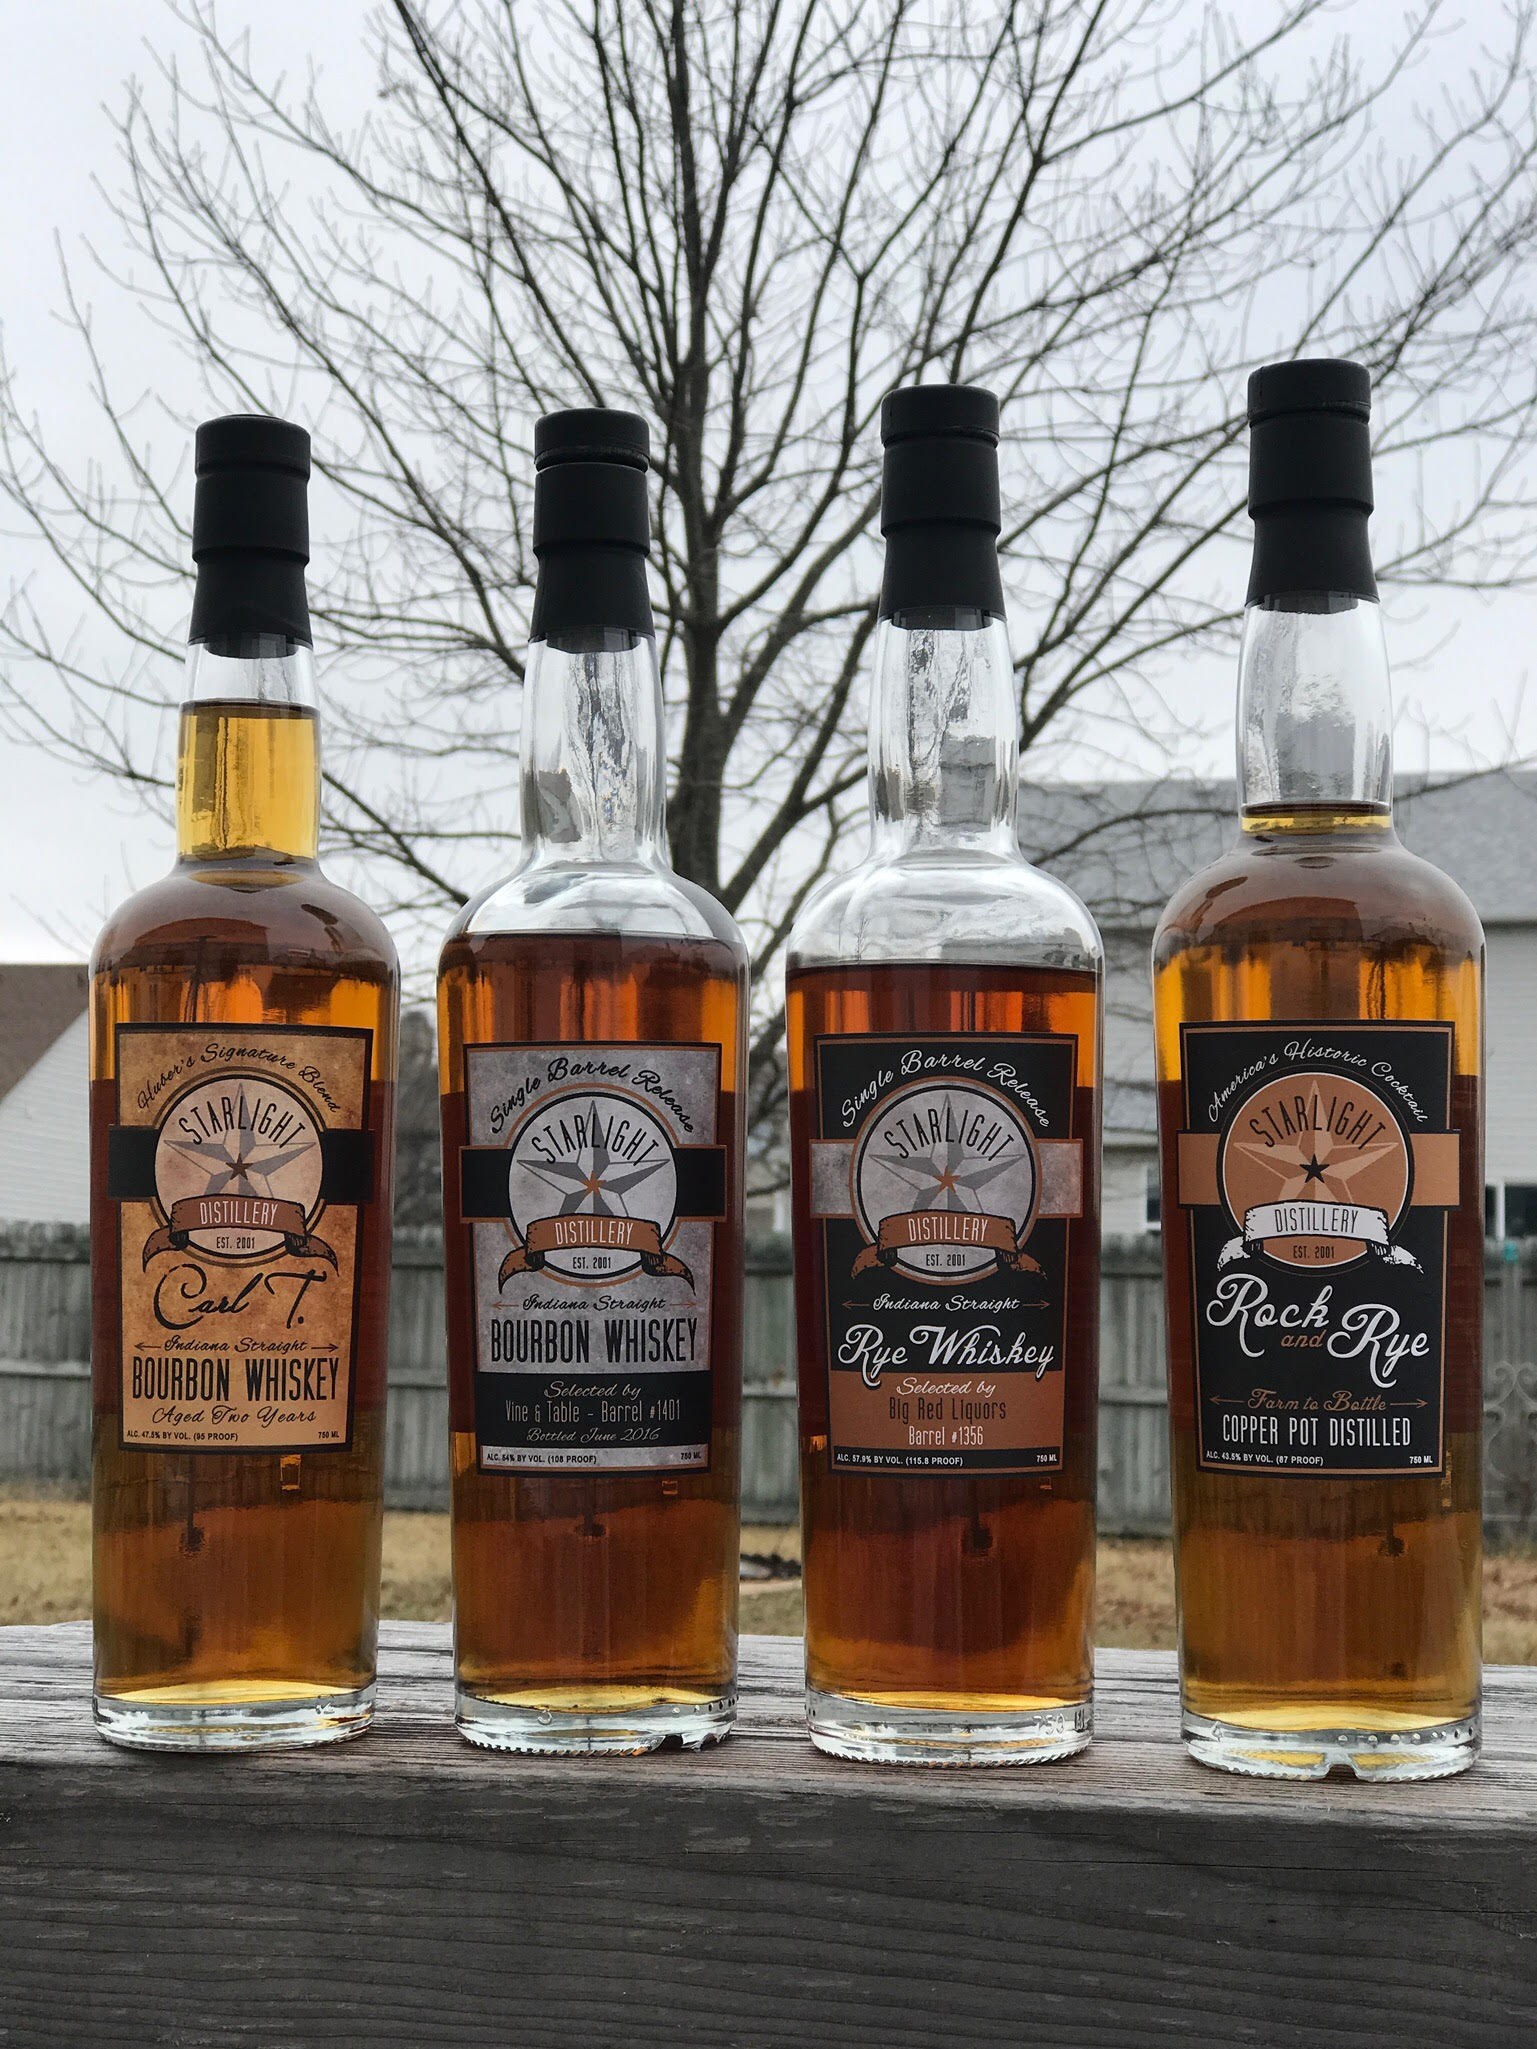 What's Going on in Indiana? – Starlight Distillery